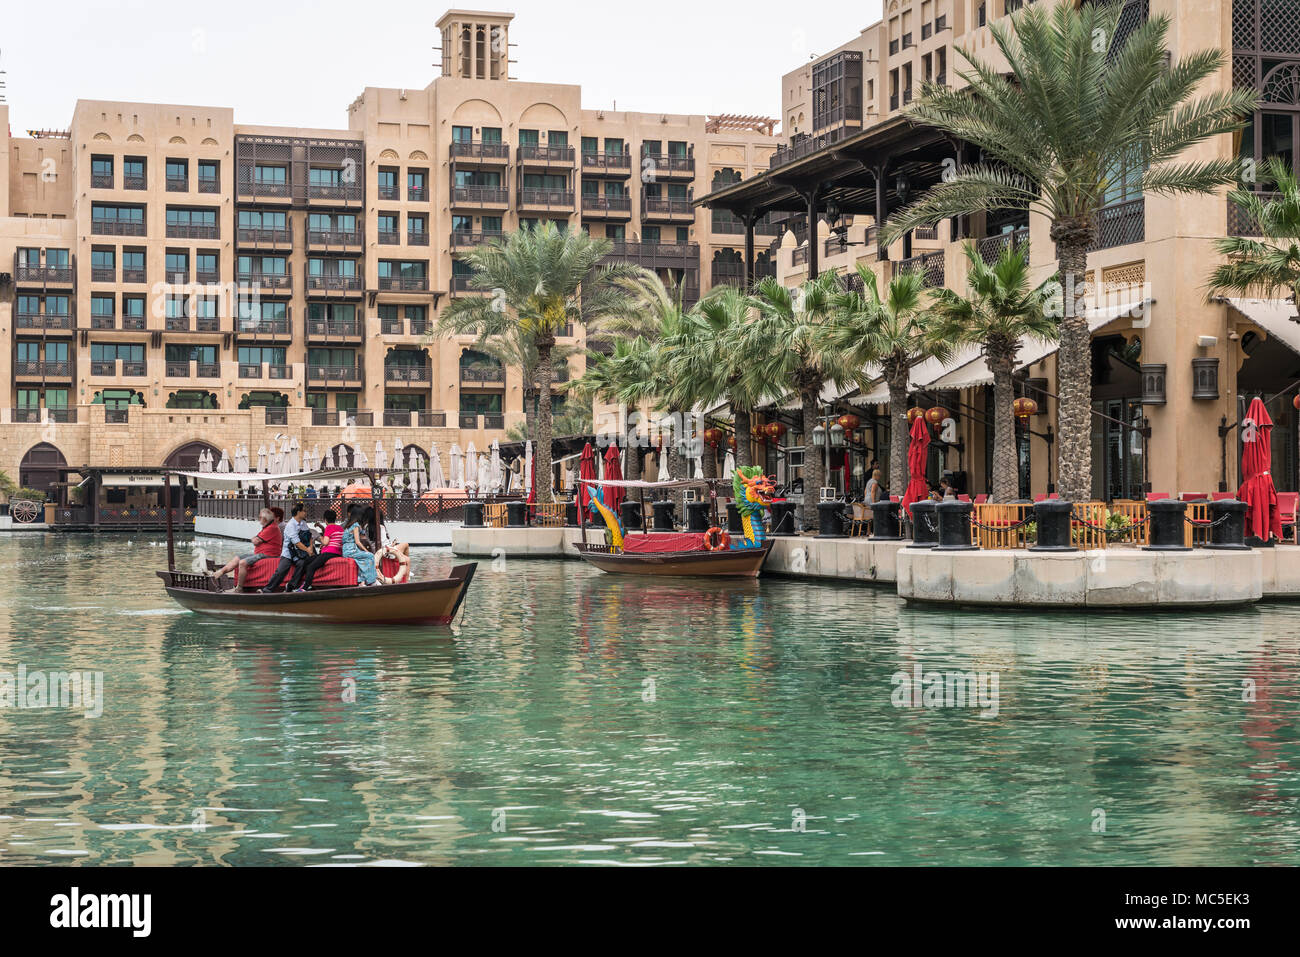 Abra boats in the canals of the Madinat Jumeirah Souq in